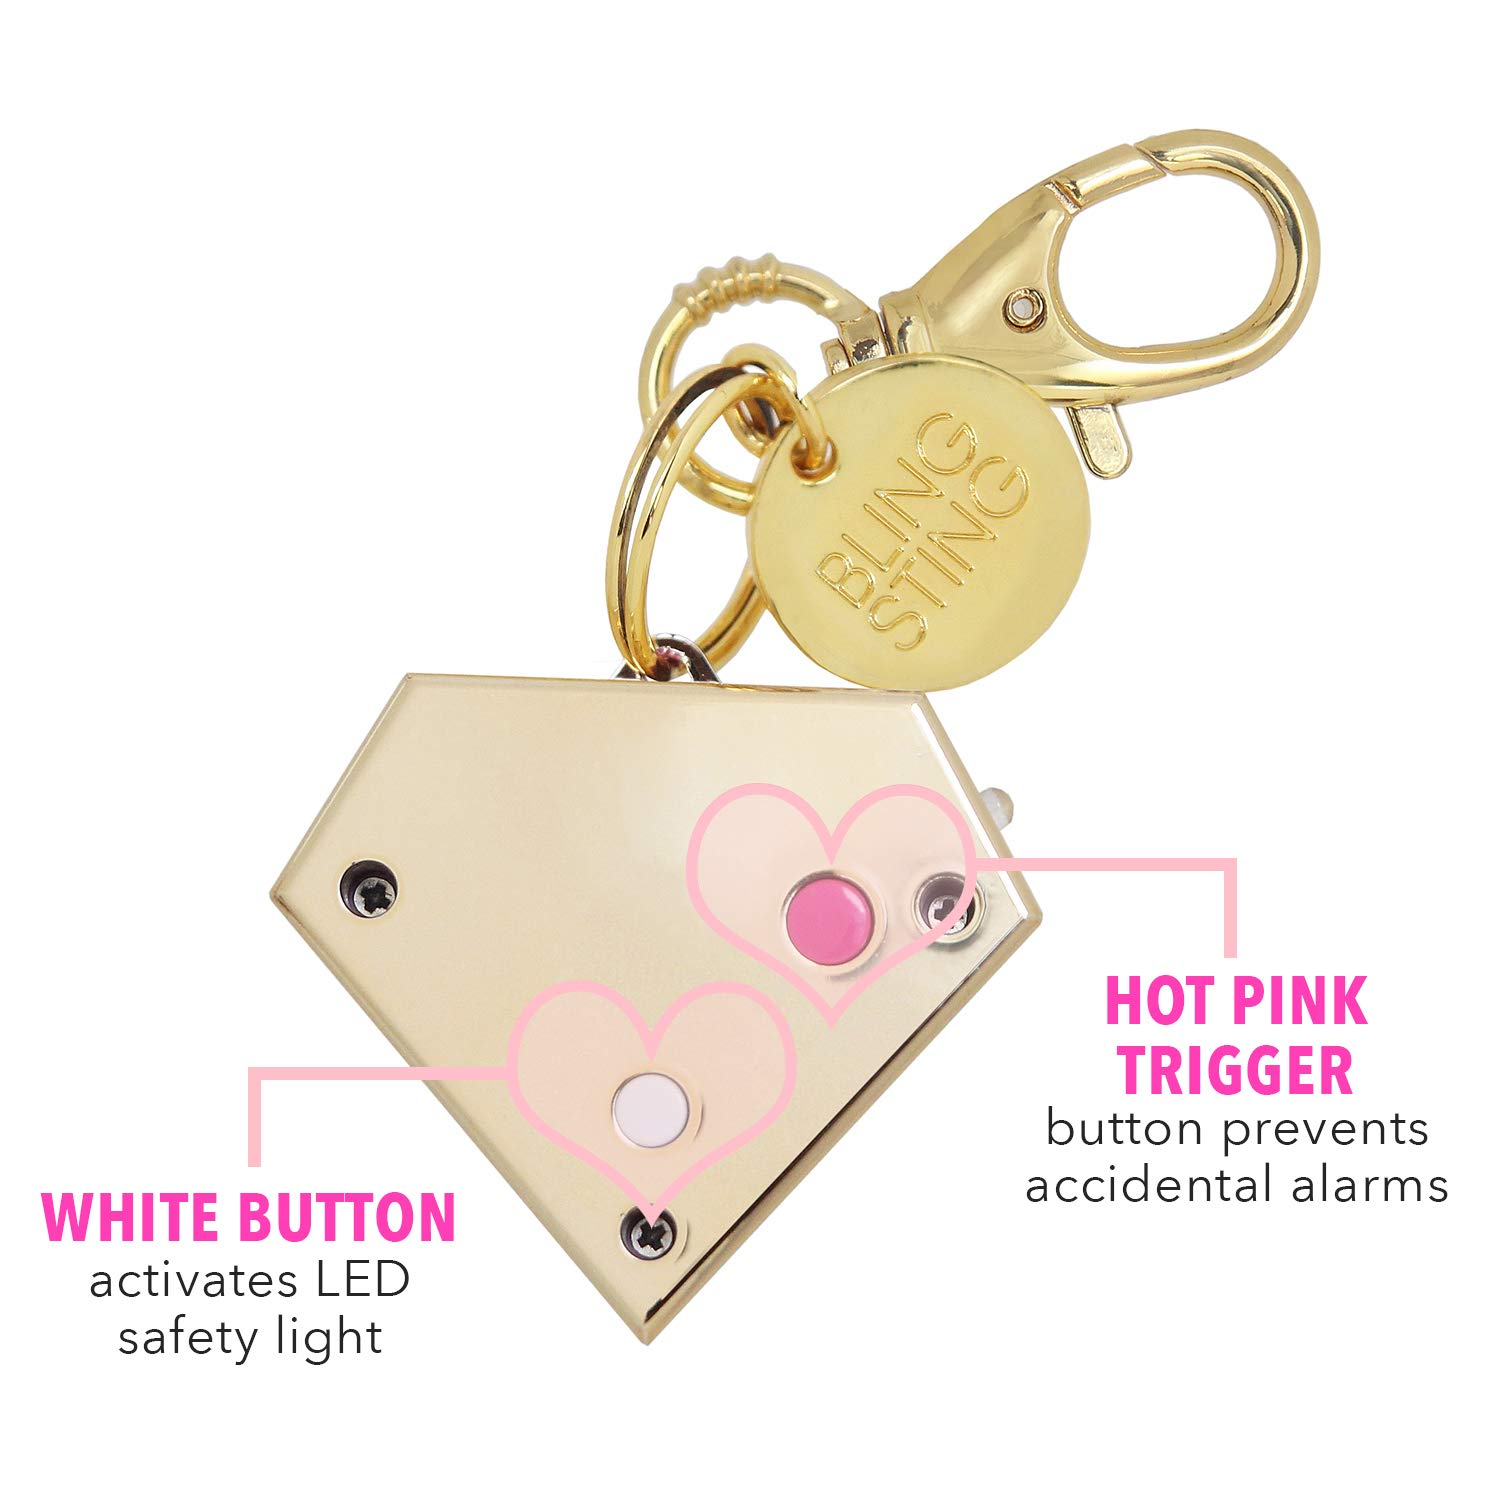 Personal Safety Alarm for Women - Ahh!-larm! Self-Defense Personal Panic Alarm Keychain for Women with LED Safety Light and Clip, Gold Gemstone Diamond by BLINGSTING (Image #3)